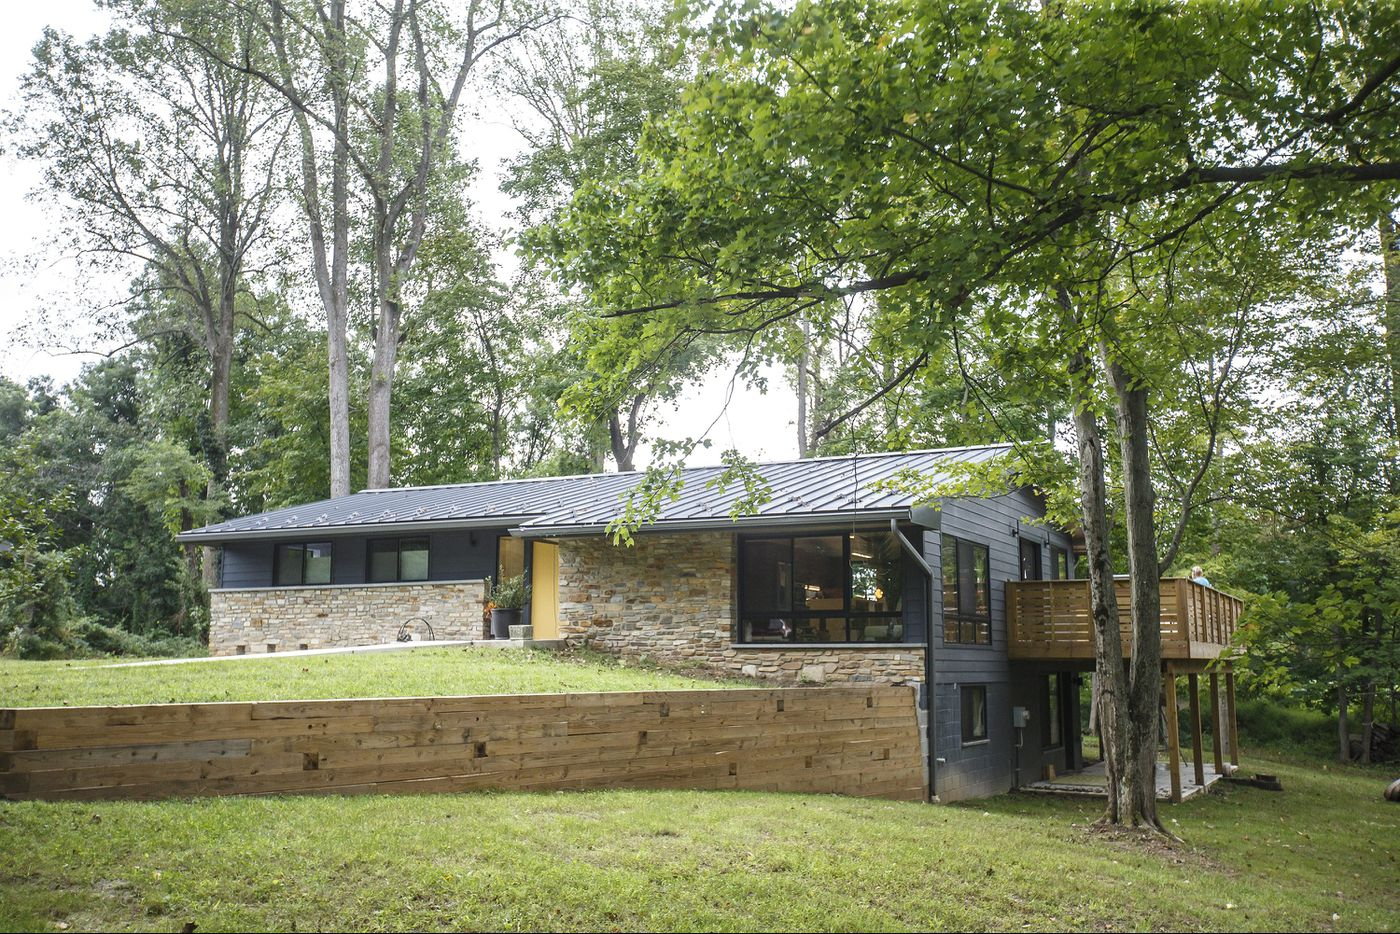 Abandoned Southampton home transformed into modern retreat for father and daughter